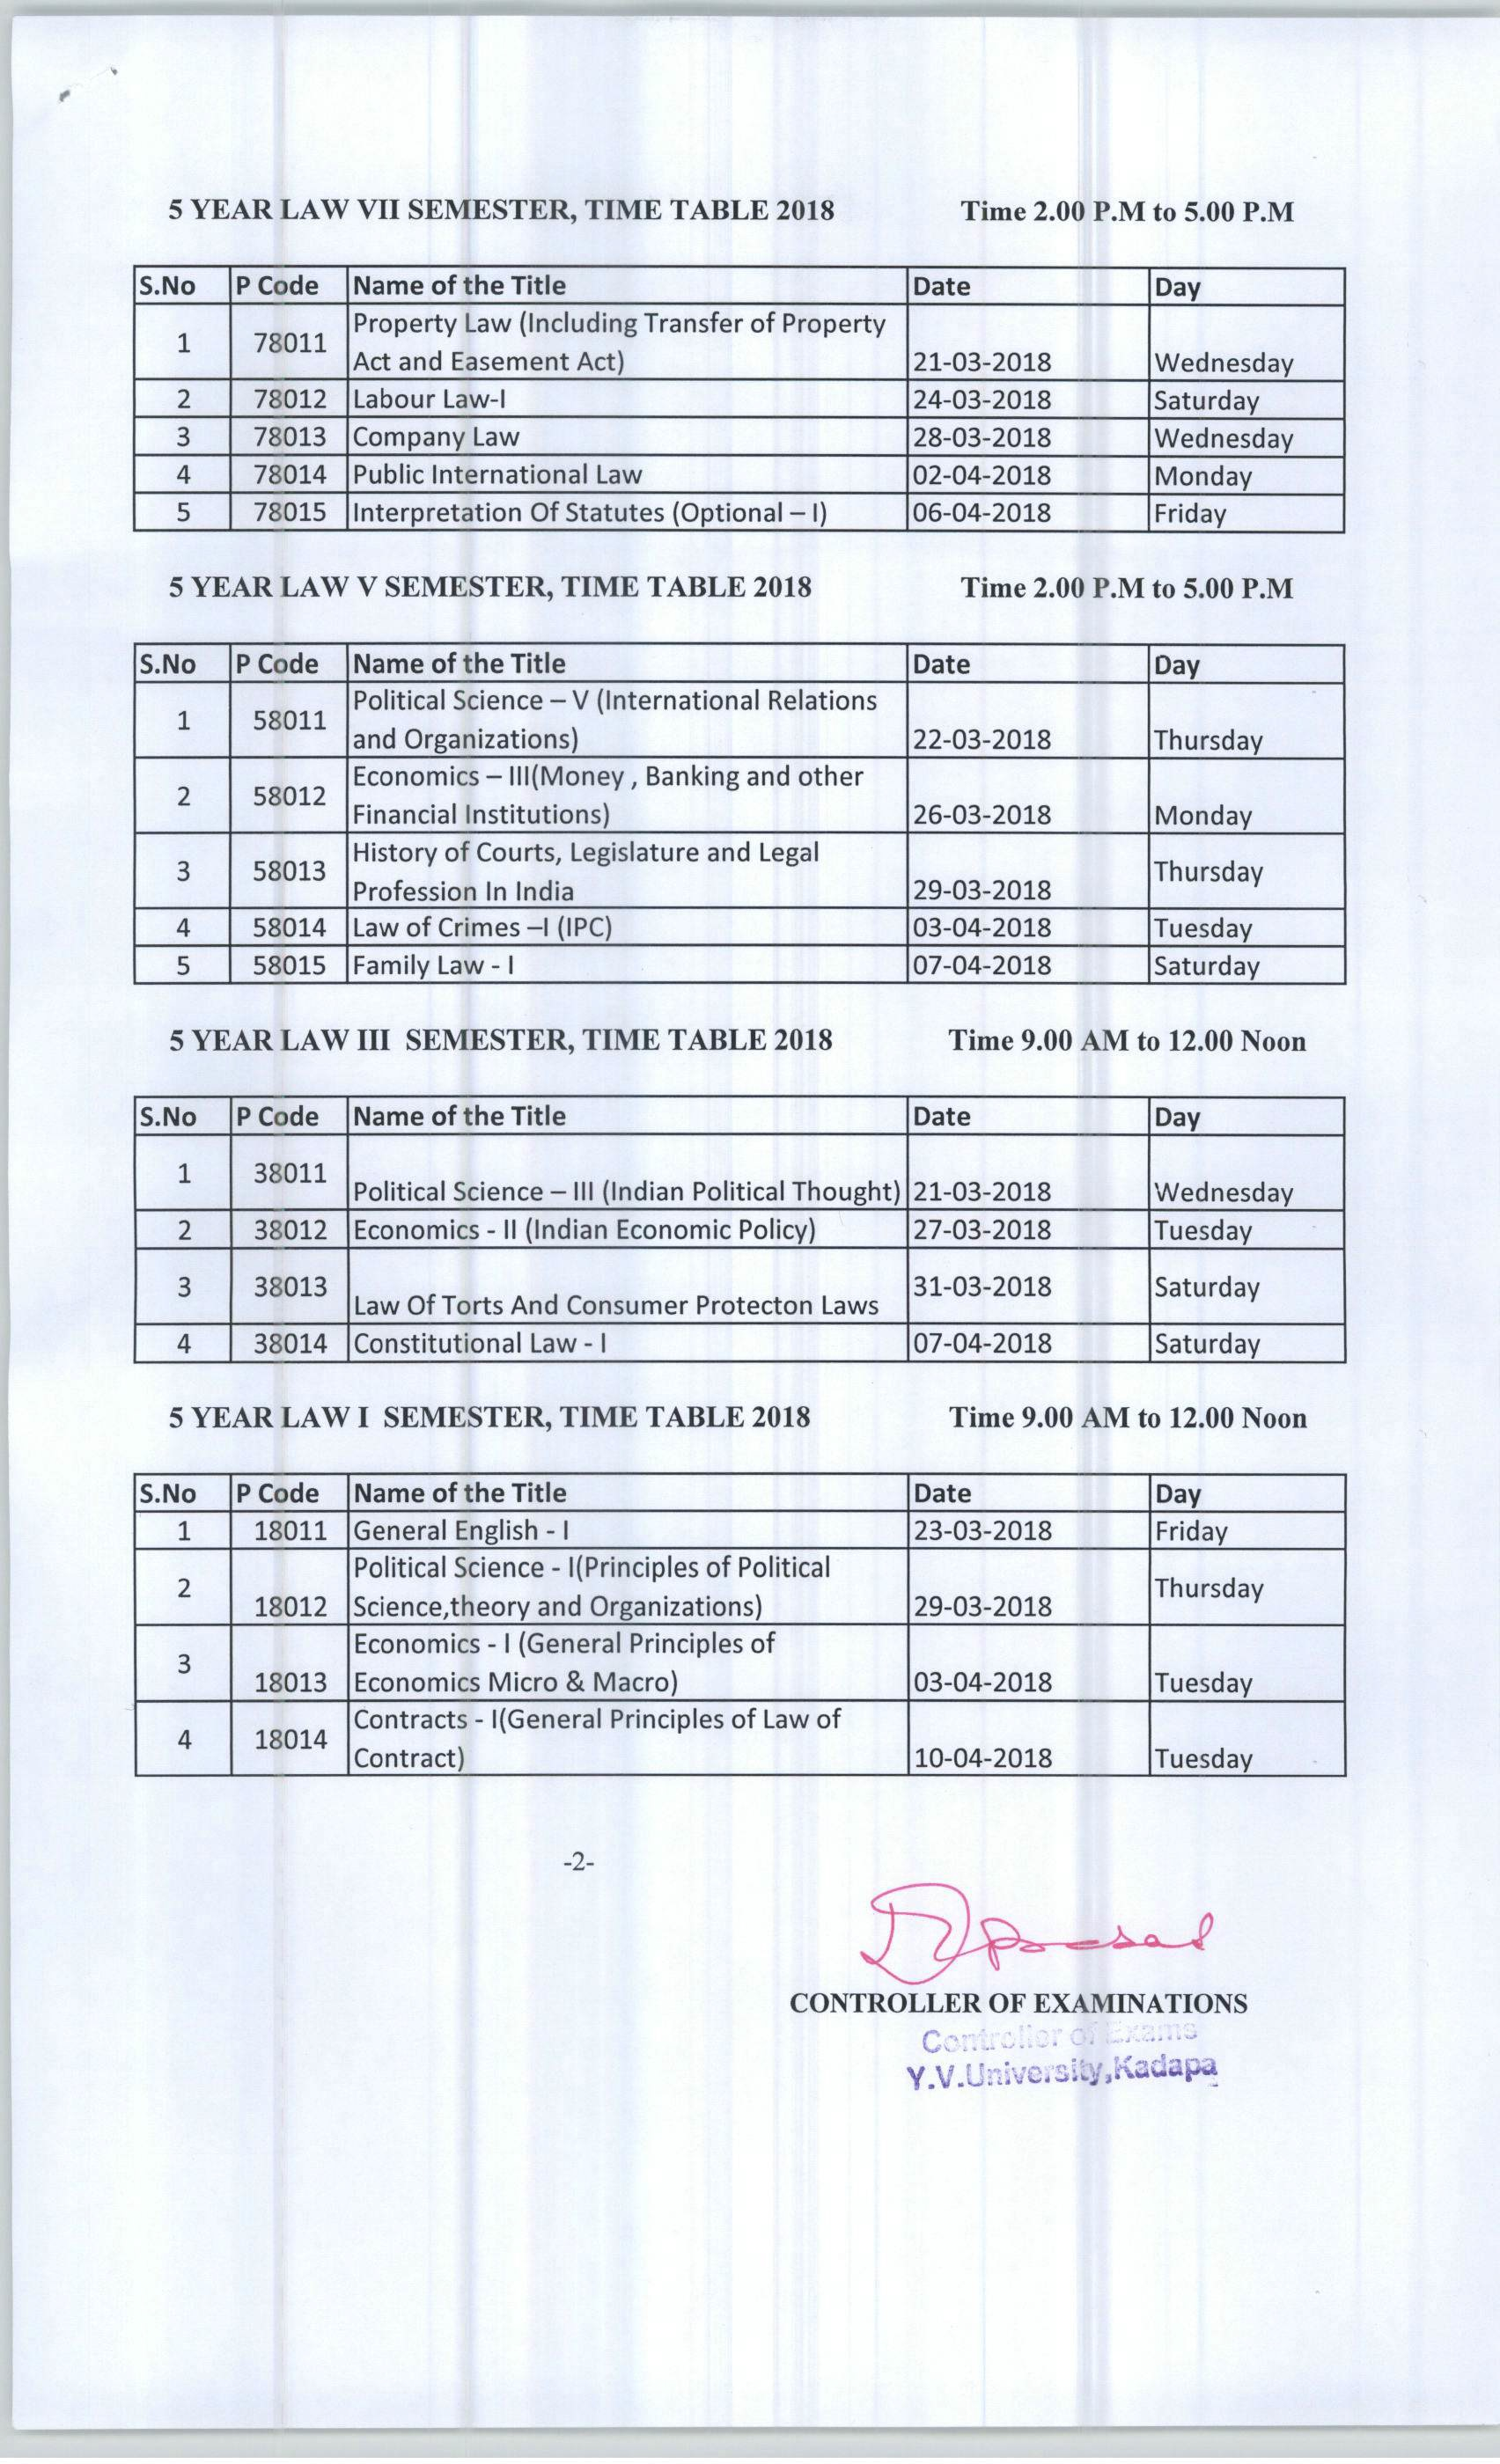 5 Year LawvTime Table